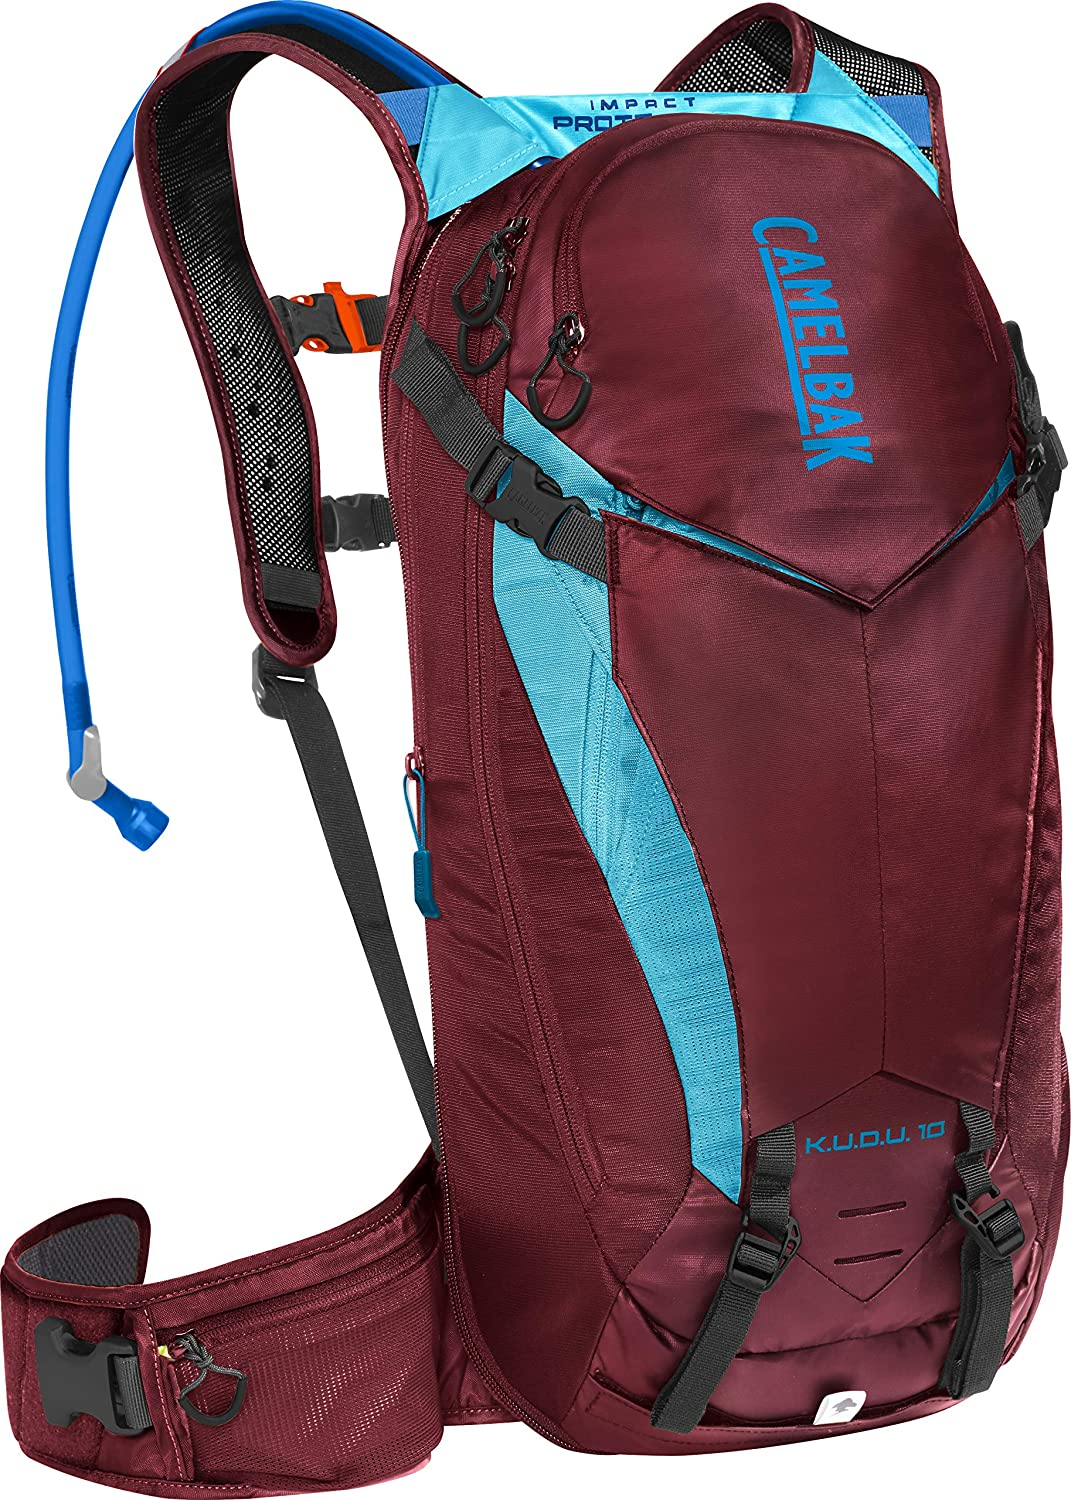 Amazon.com : CamelBak K.U.D.U. Protector 10 Hydration Pack, 100oz : Sports & Outdoors